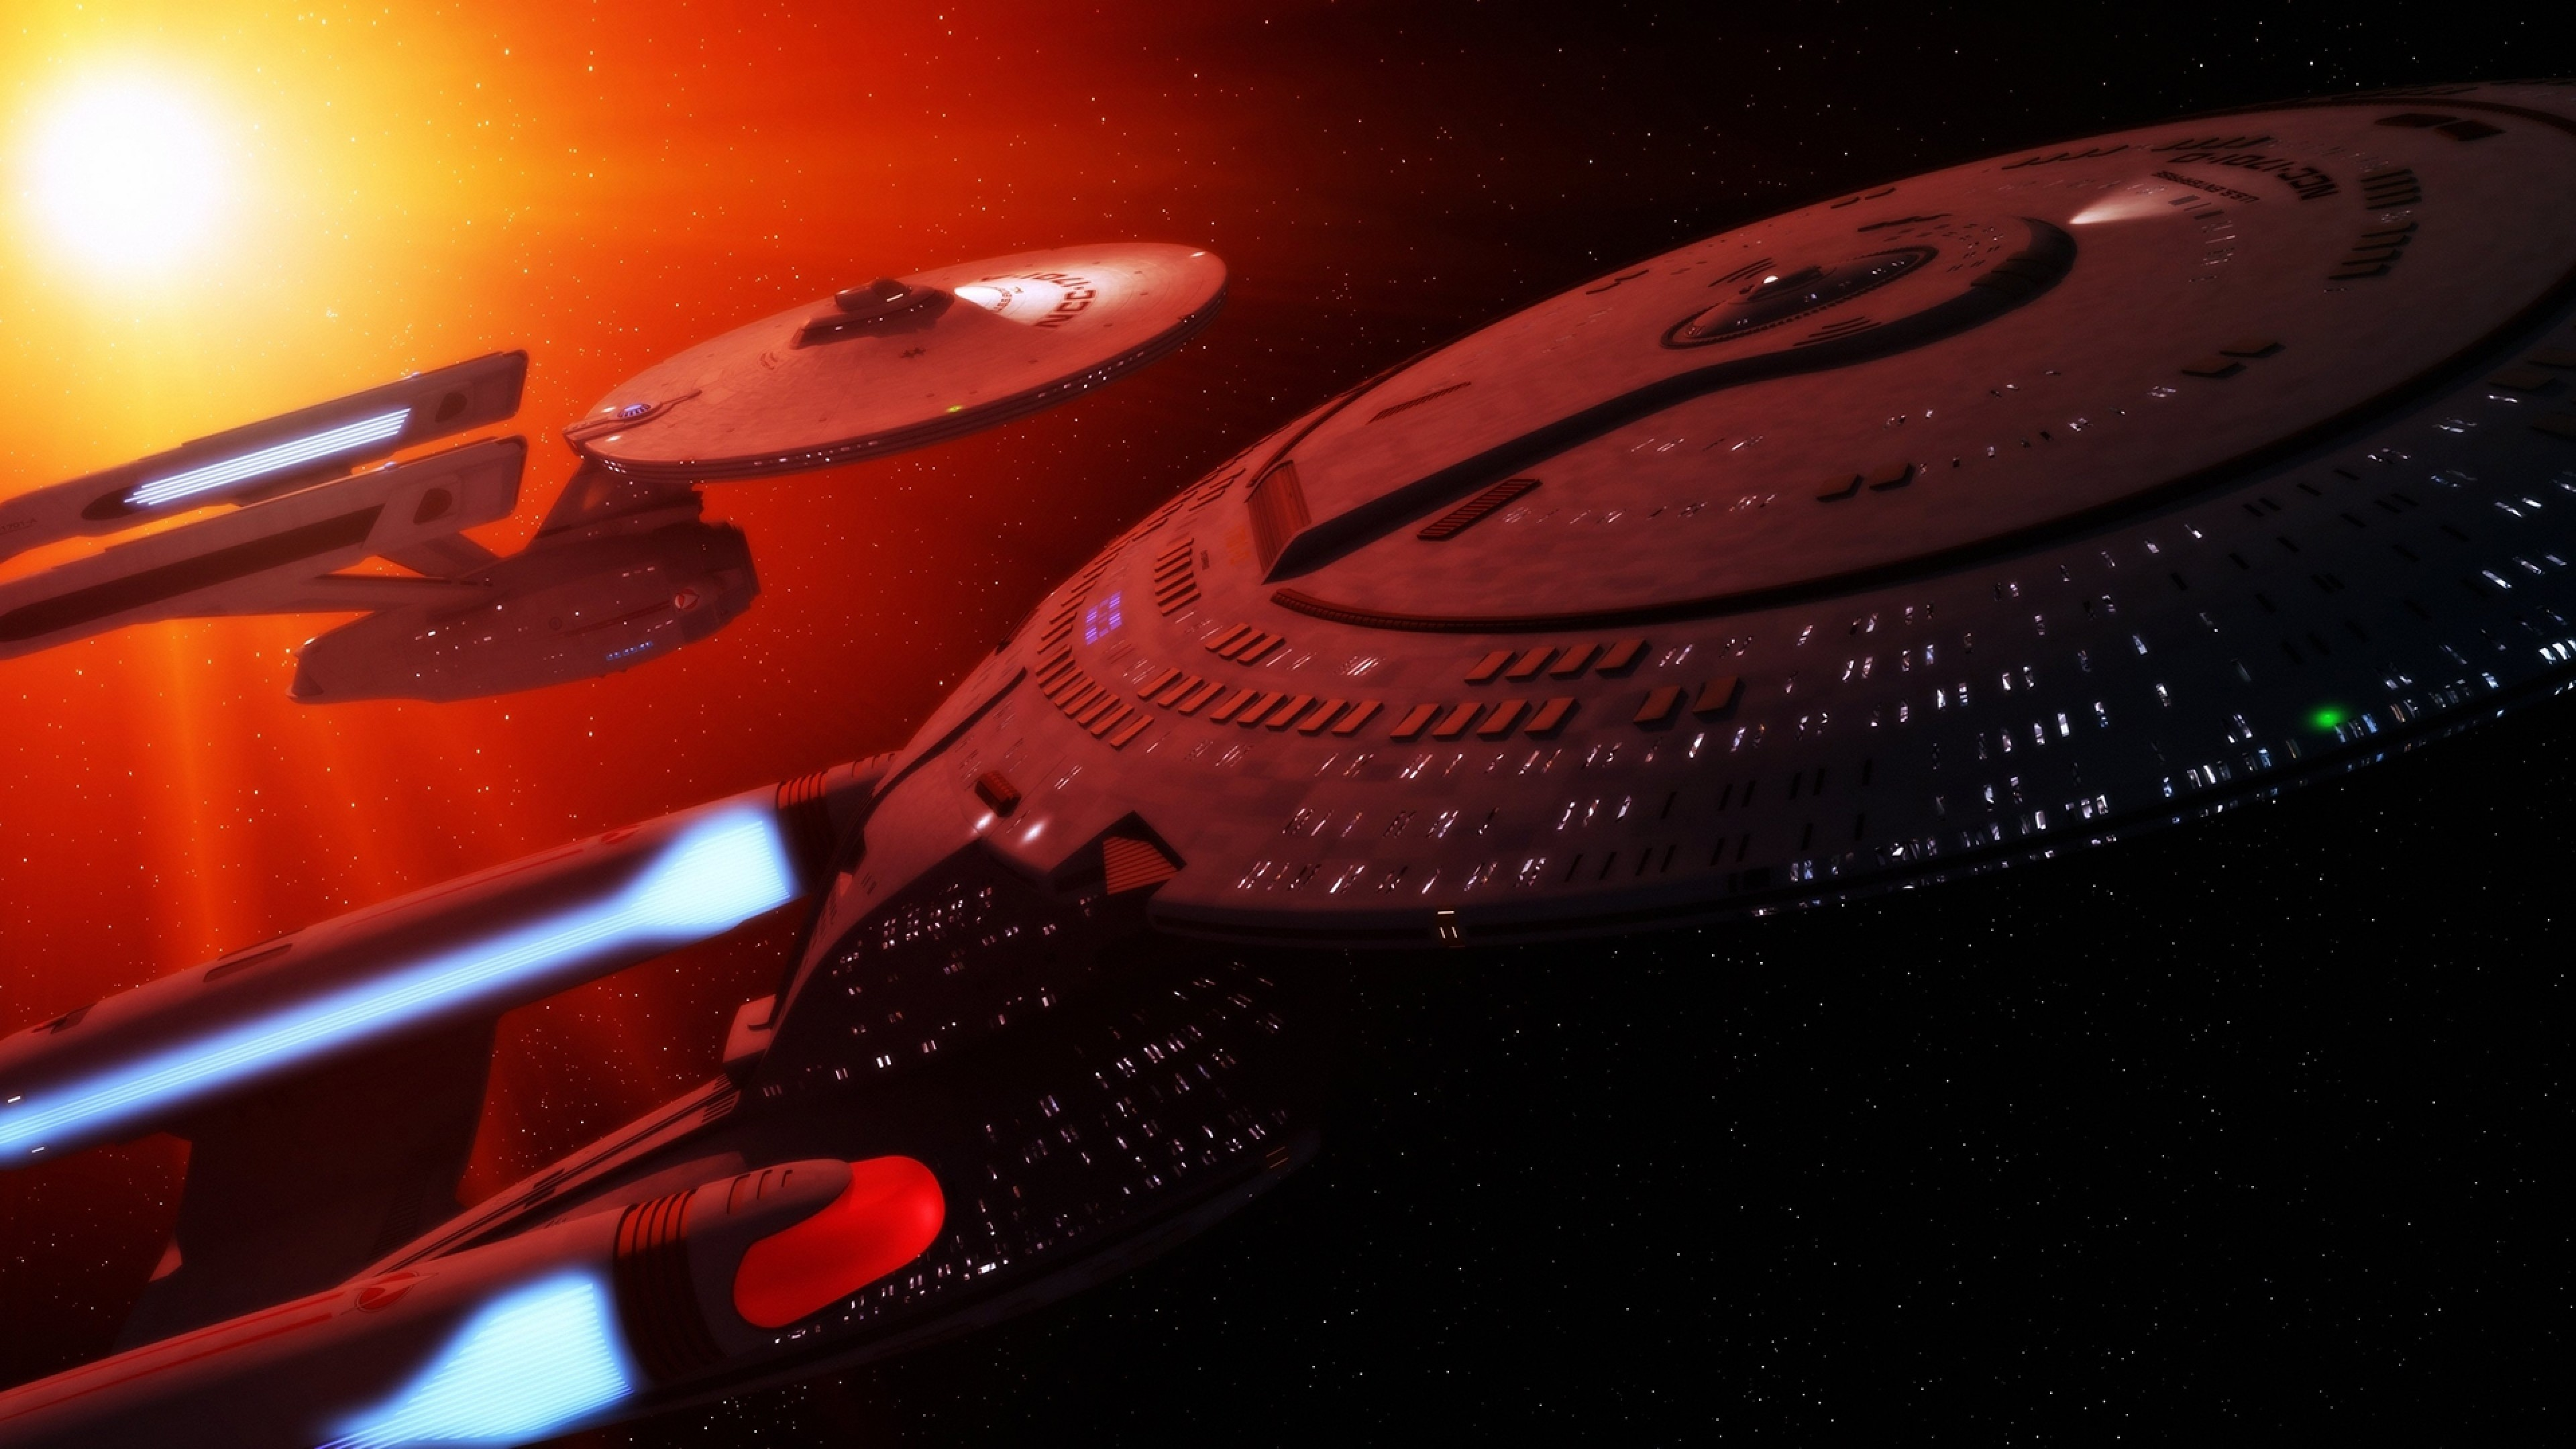 3840x2160 Starship Enterprise, Star Trek, Space, Sci-fi